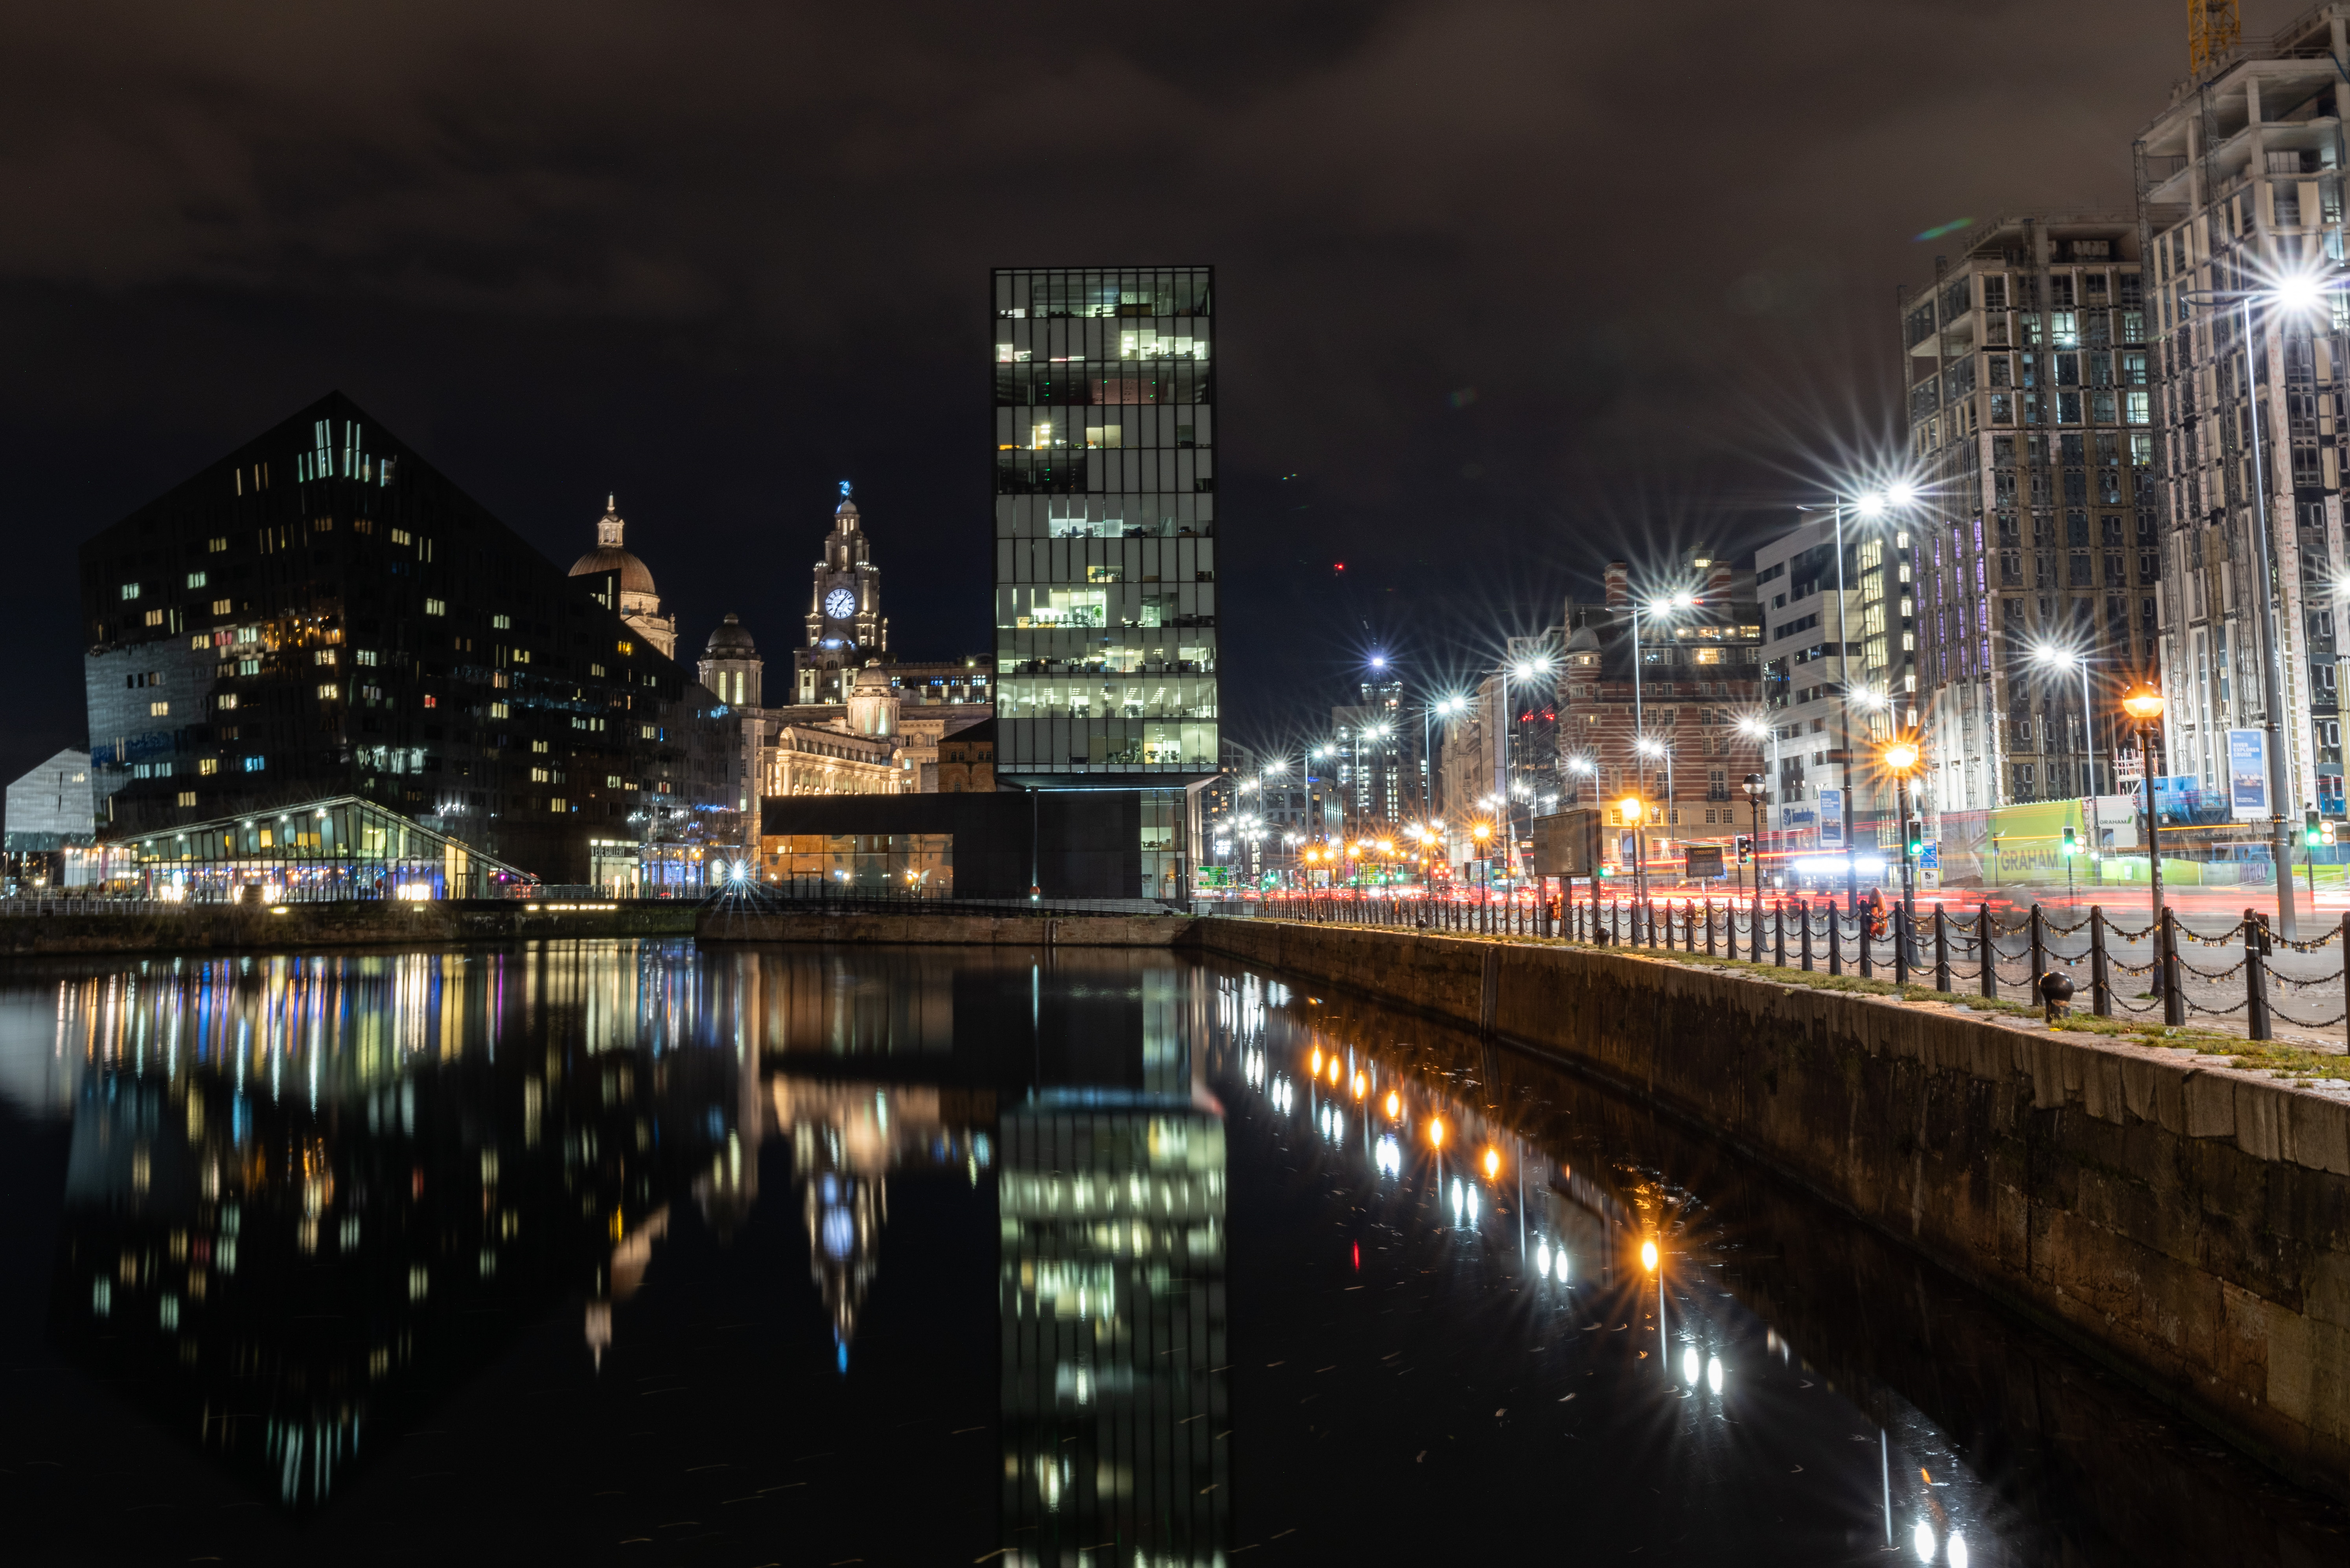 Canning Dock at night